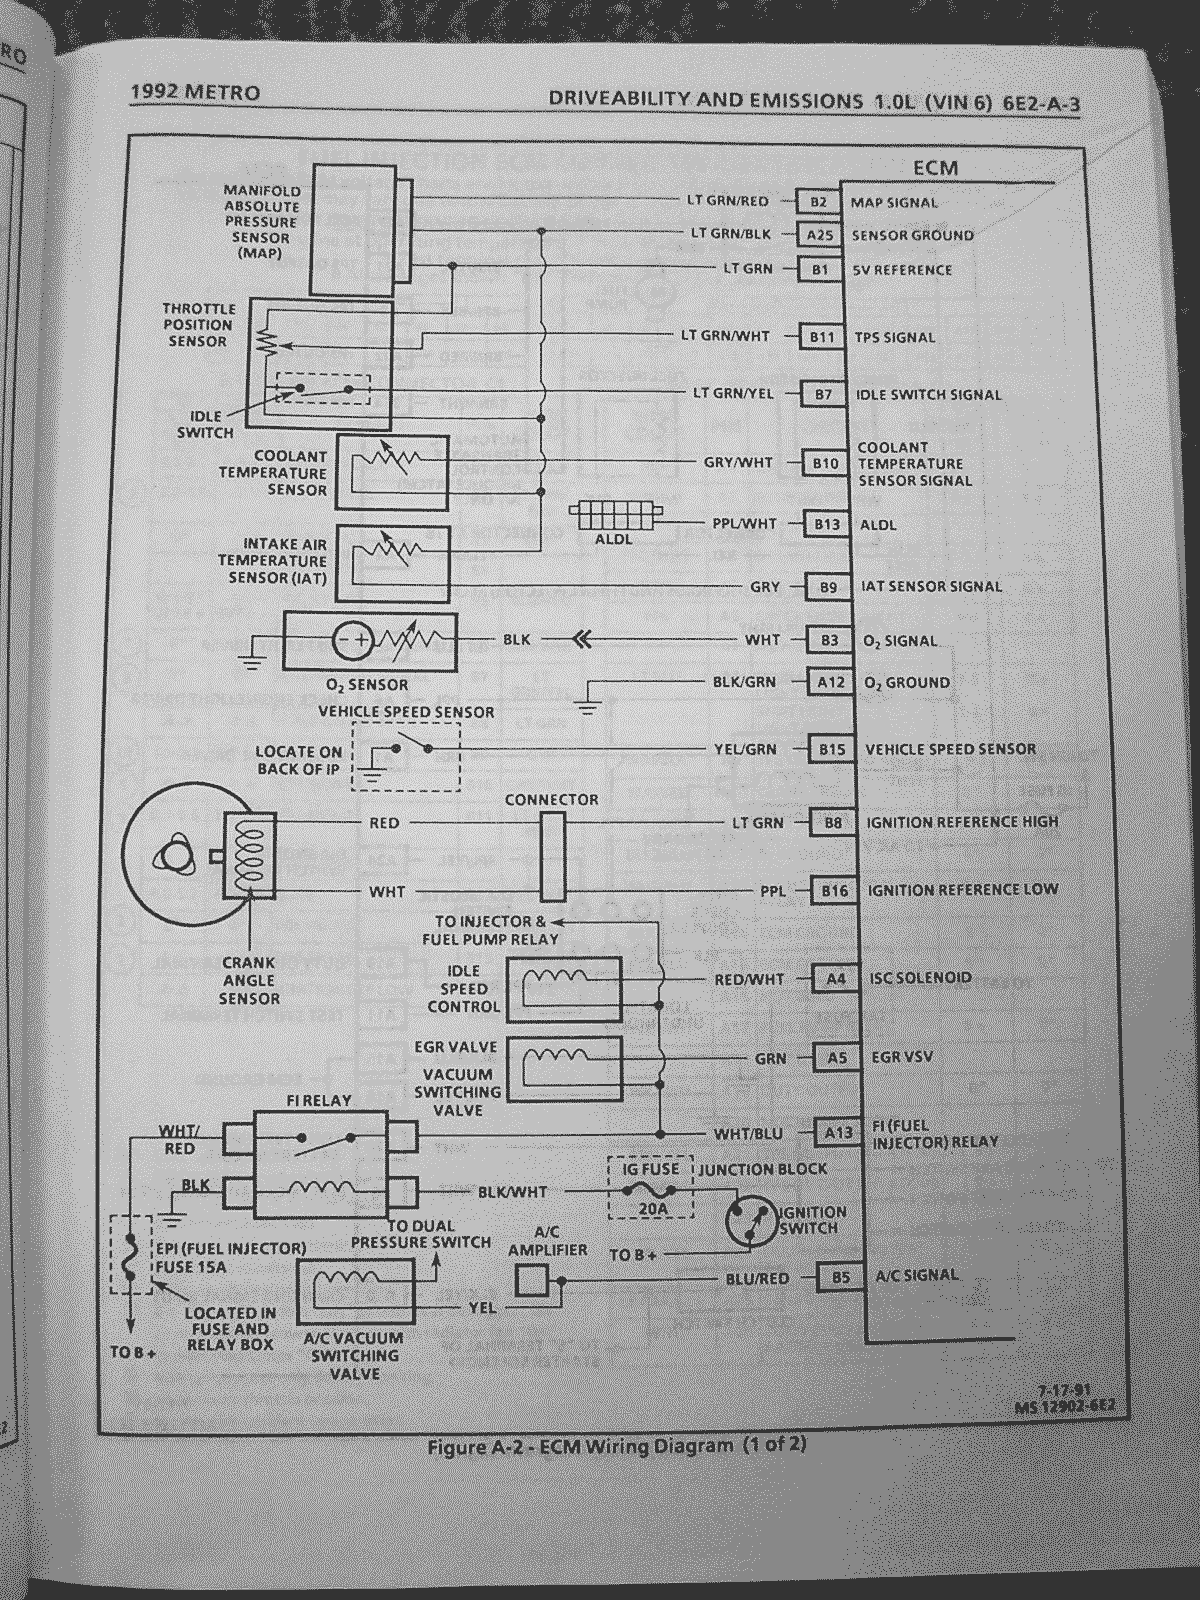 1994 Suzuki Swift Fuse Box Diagram - Wiring Diagram